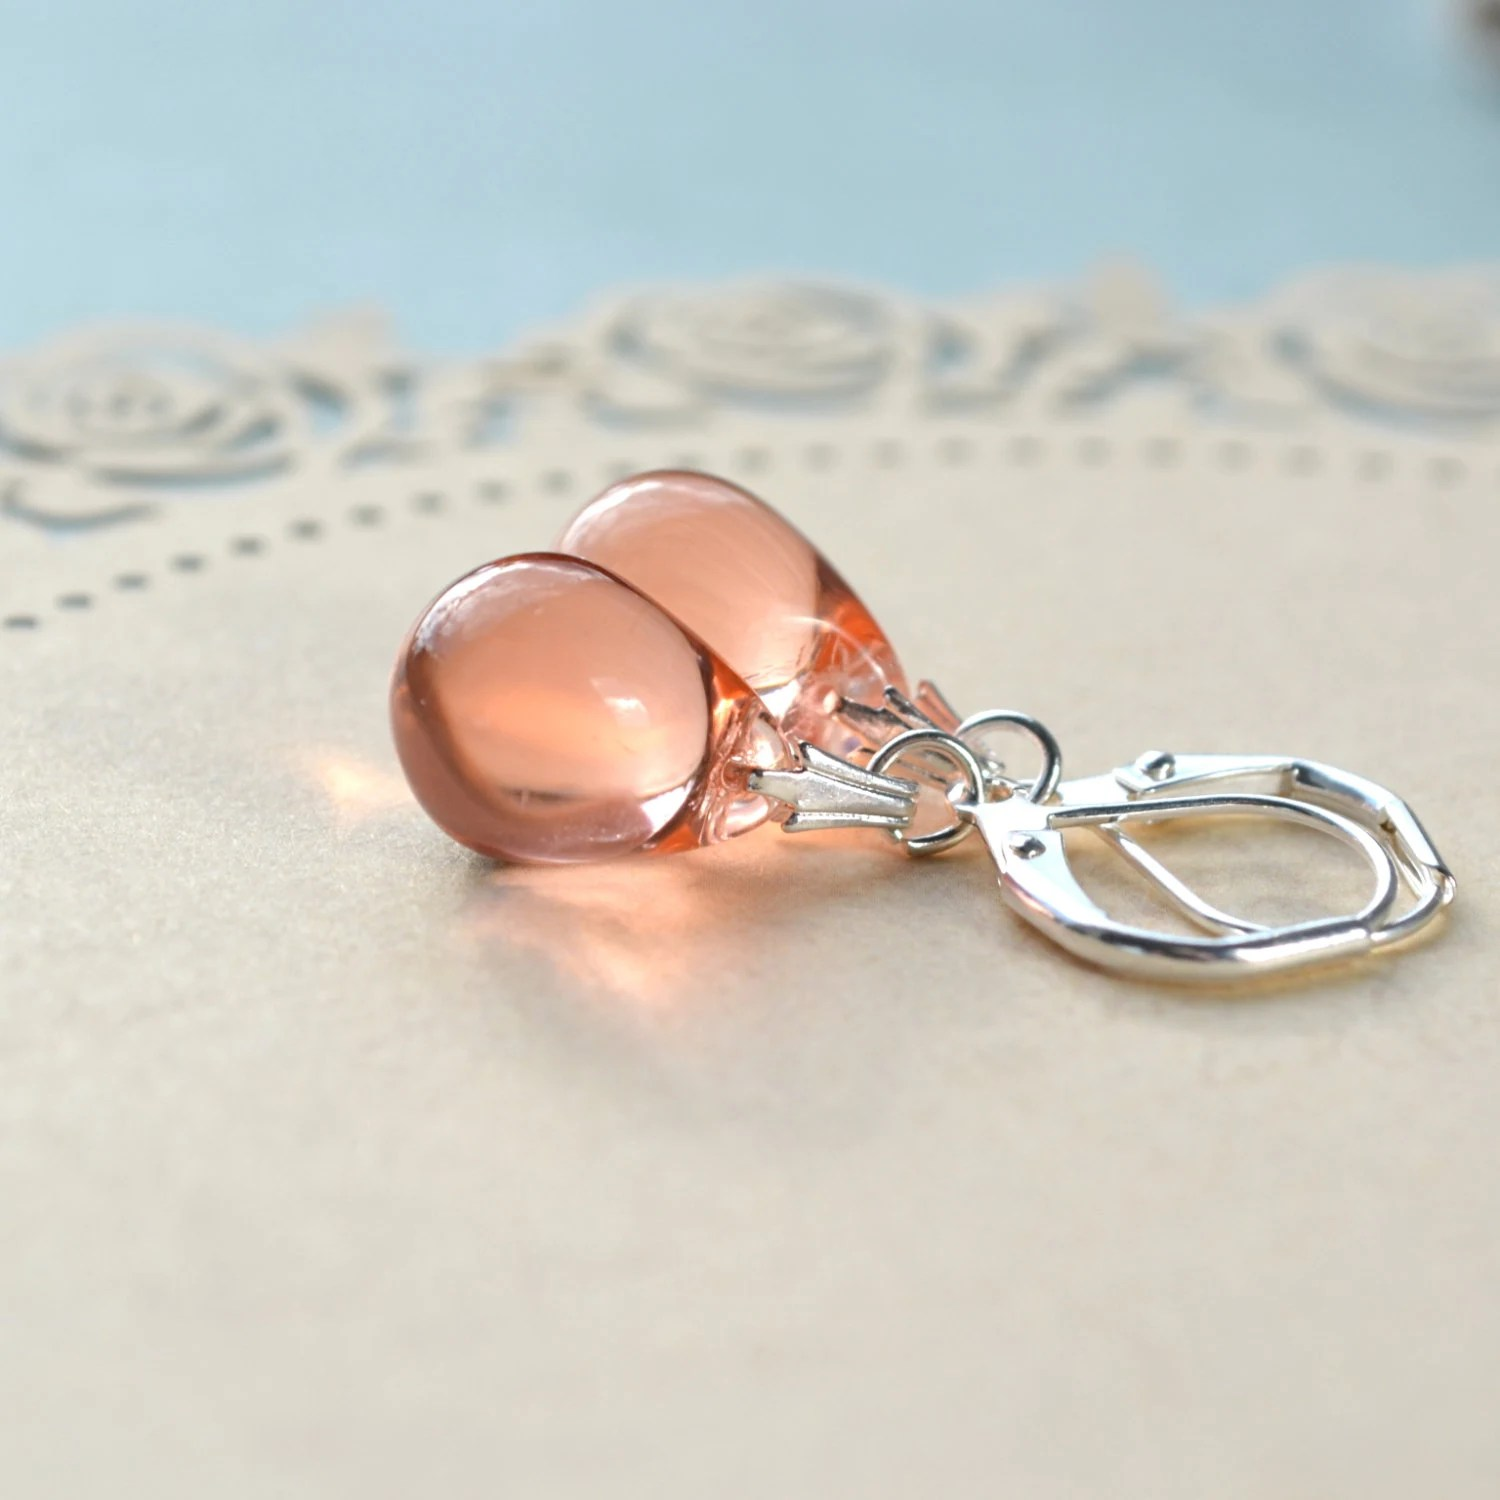 Peach Earrings Teardrop Earrings Peach Drop Earrings Peach